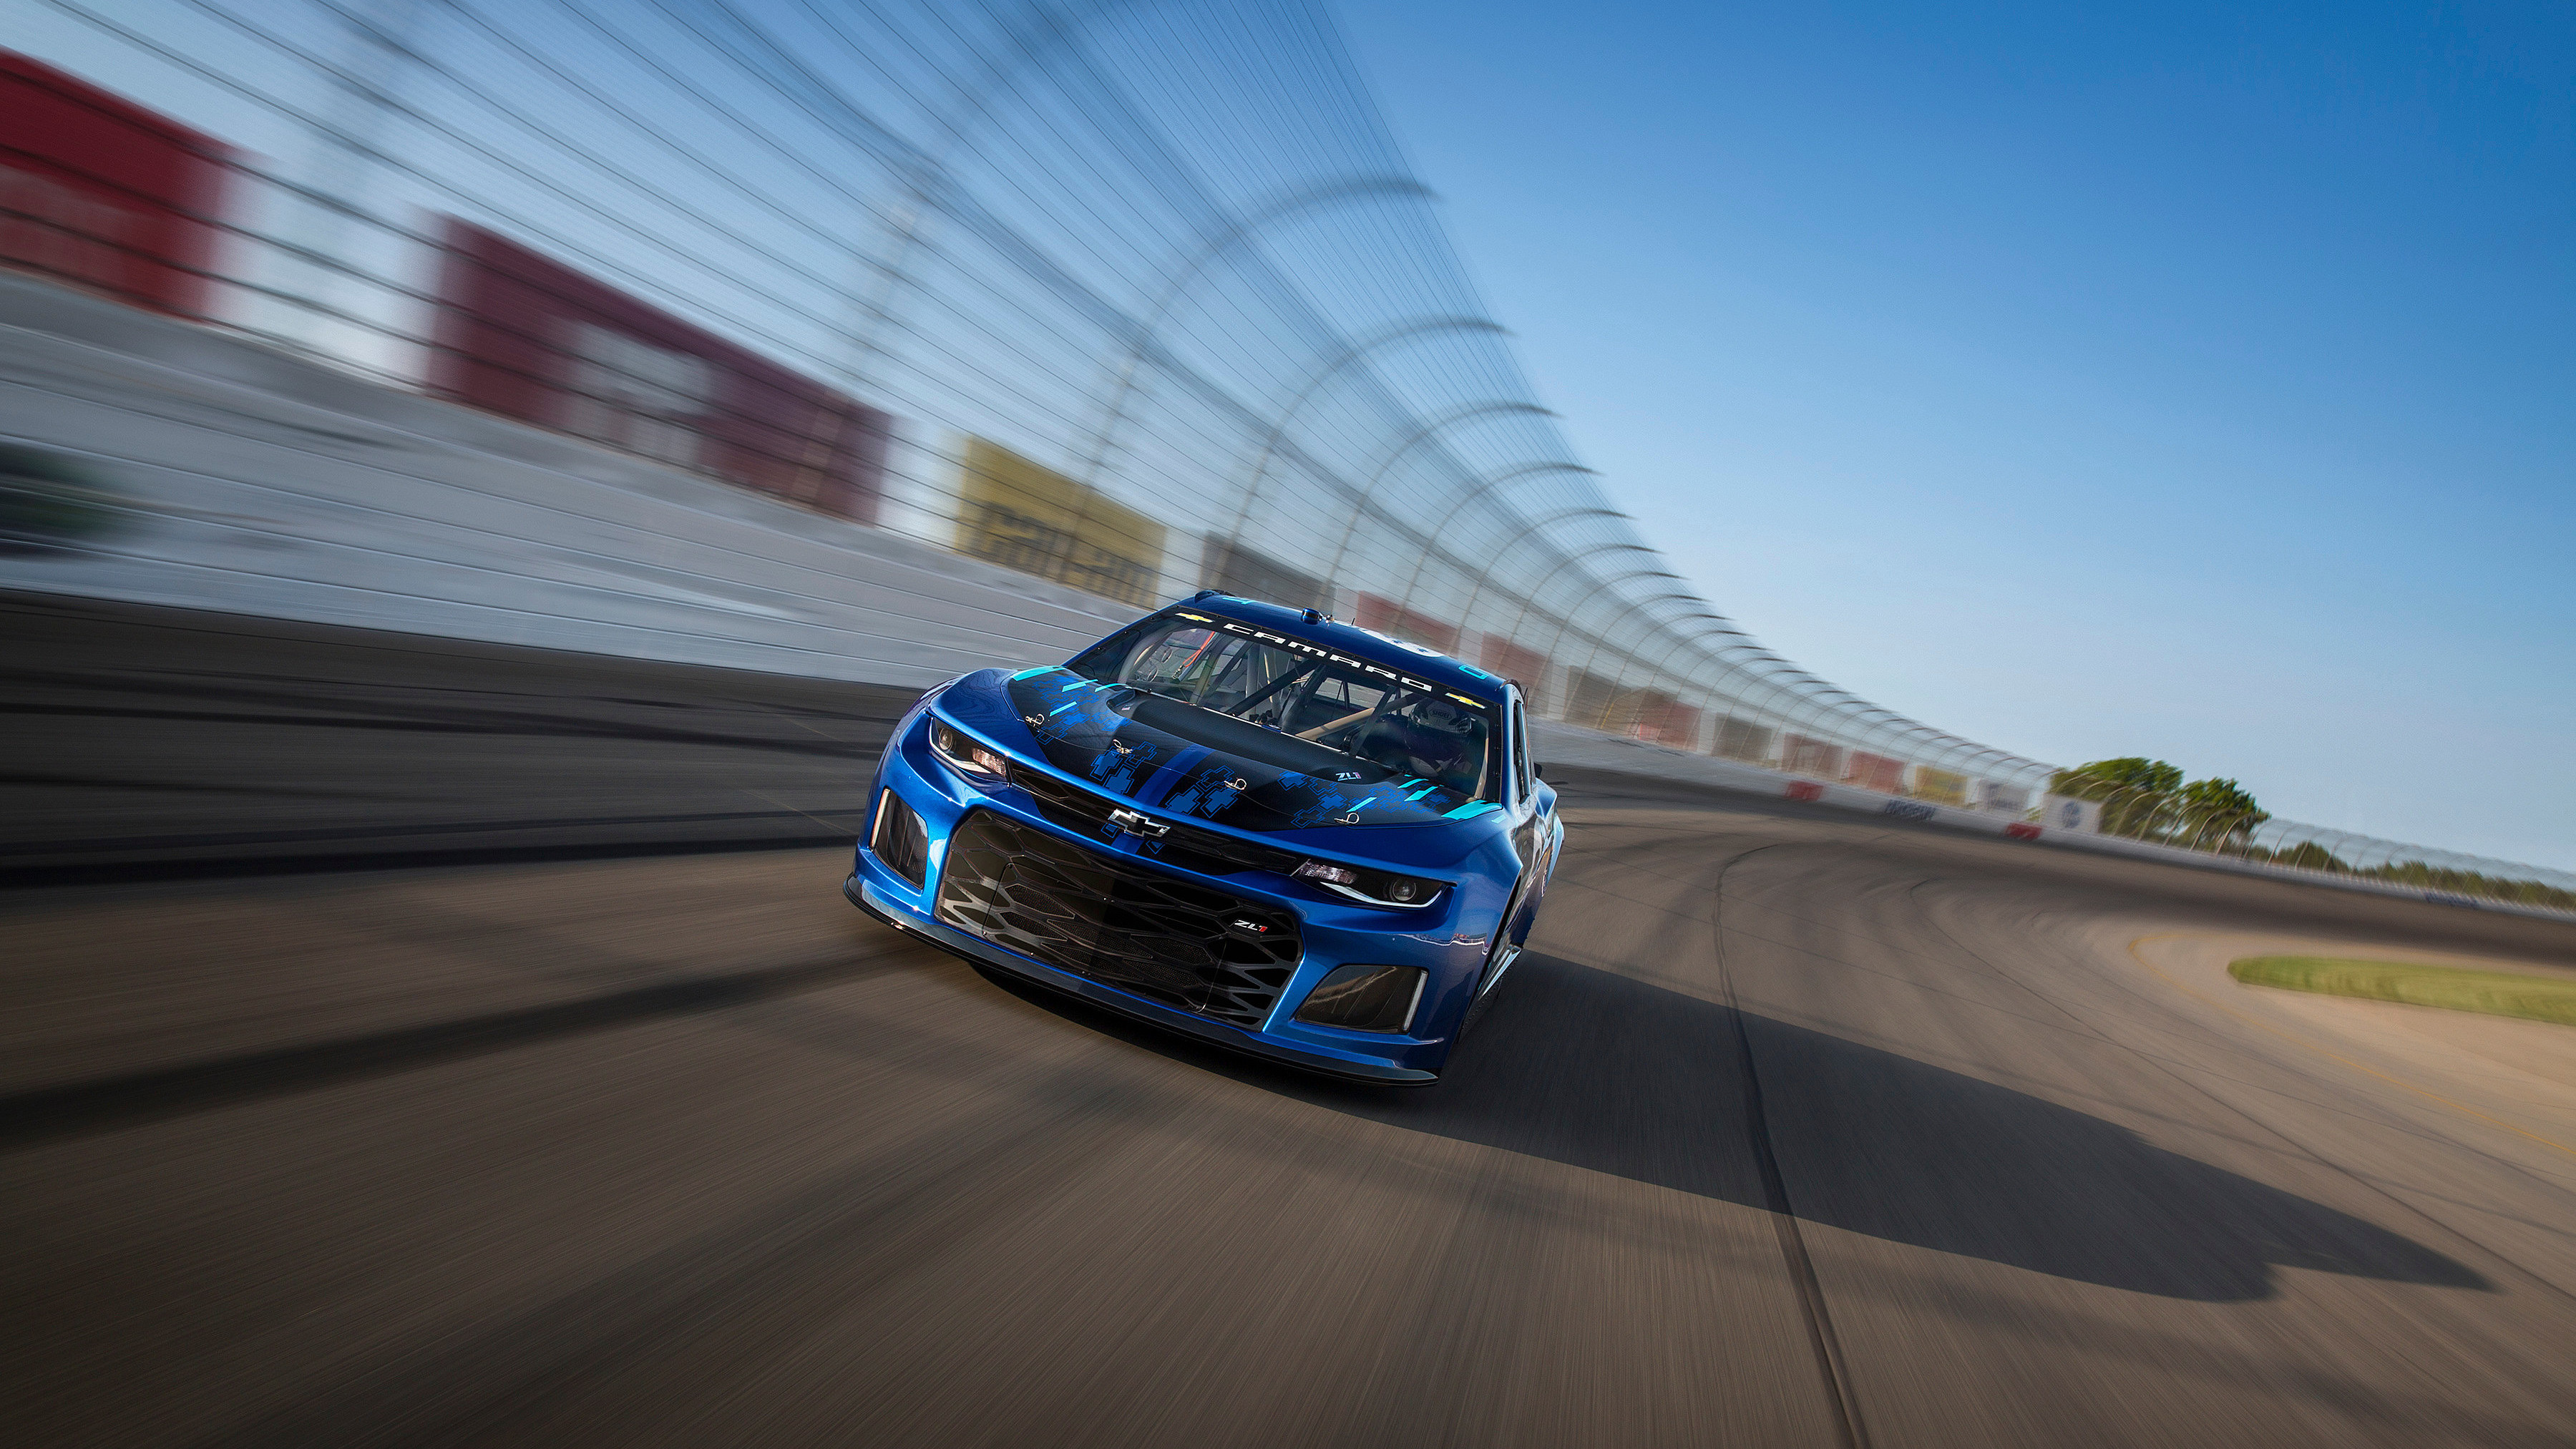 3600x2025 2018 Chevrolet Camaro ZL1 Nascar Race Car 2